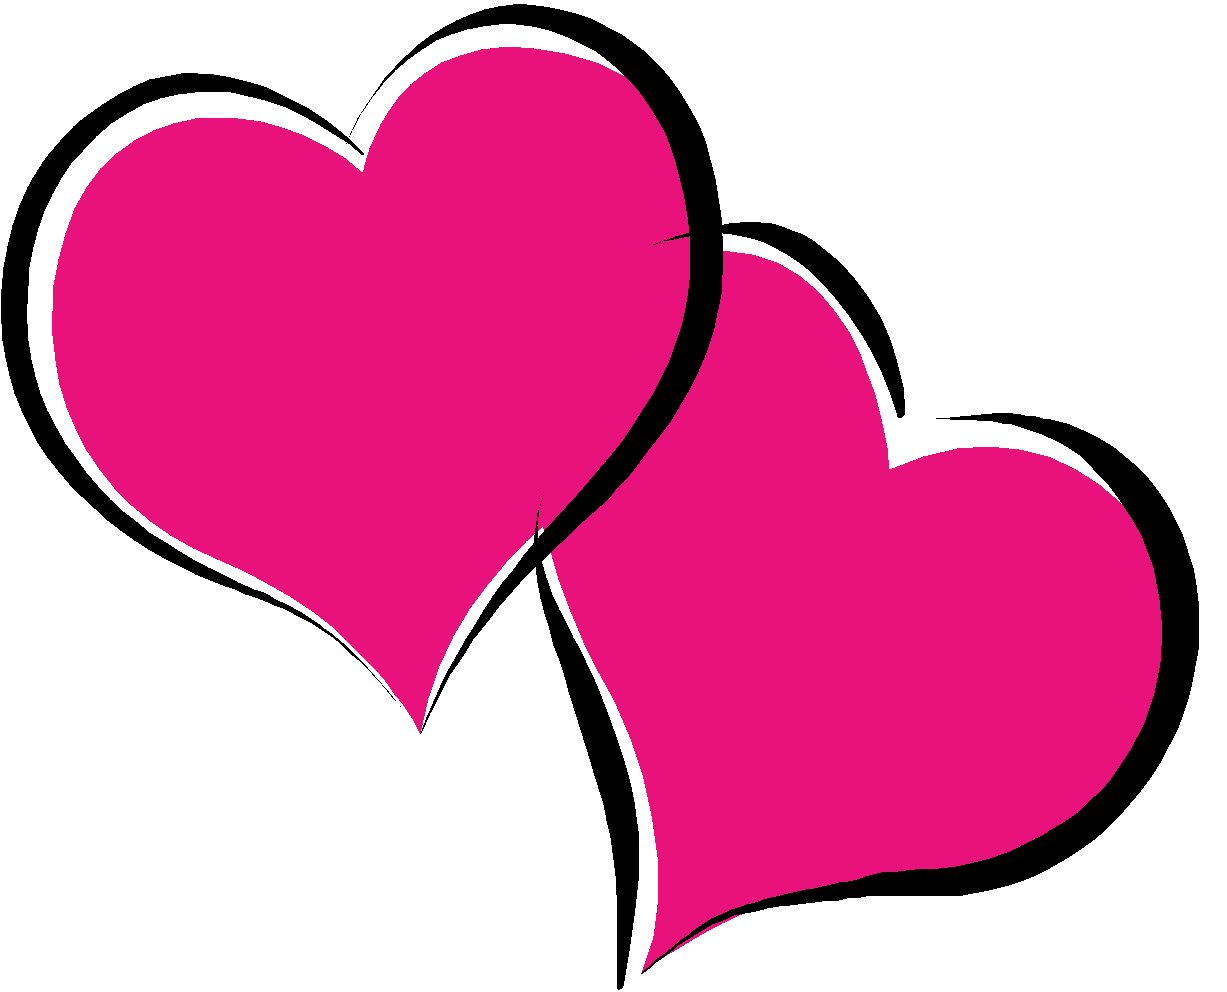 Valentine and heart clip art 2014 | Download Free Word, Excel, PDF